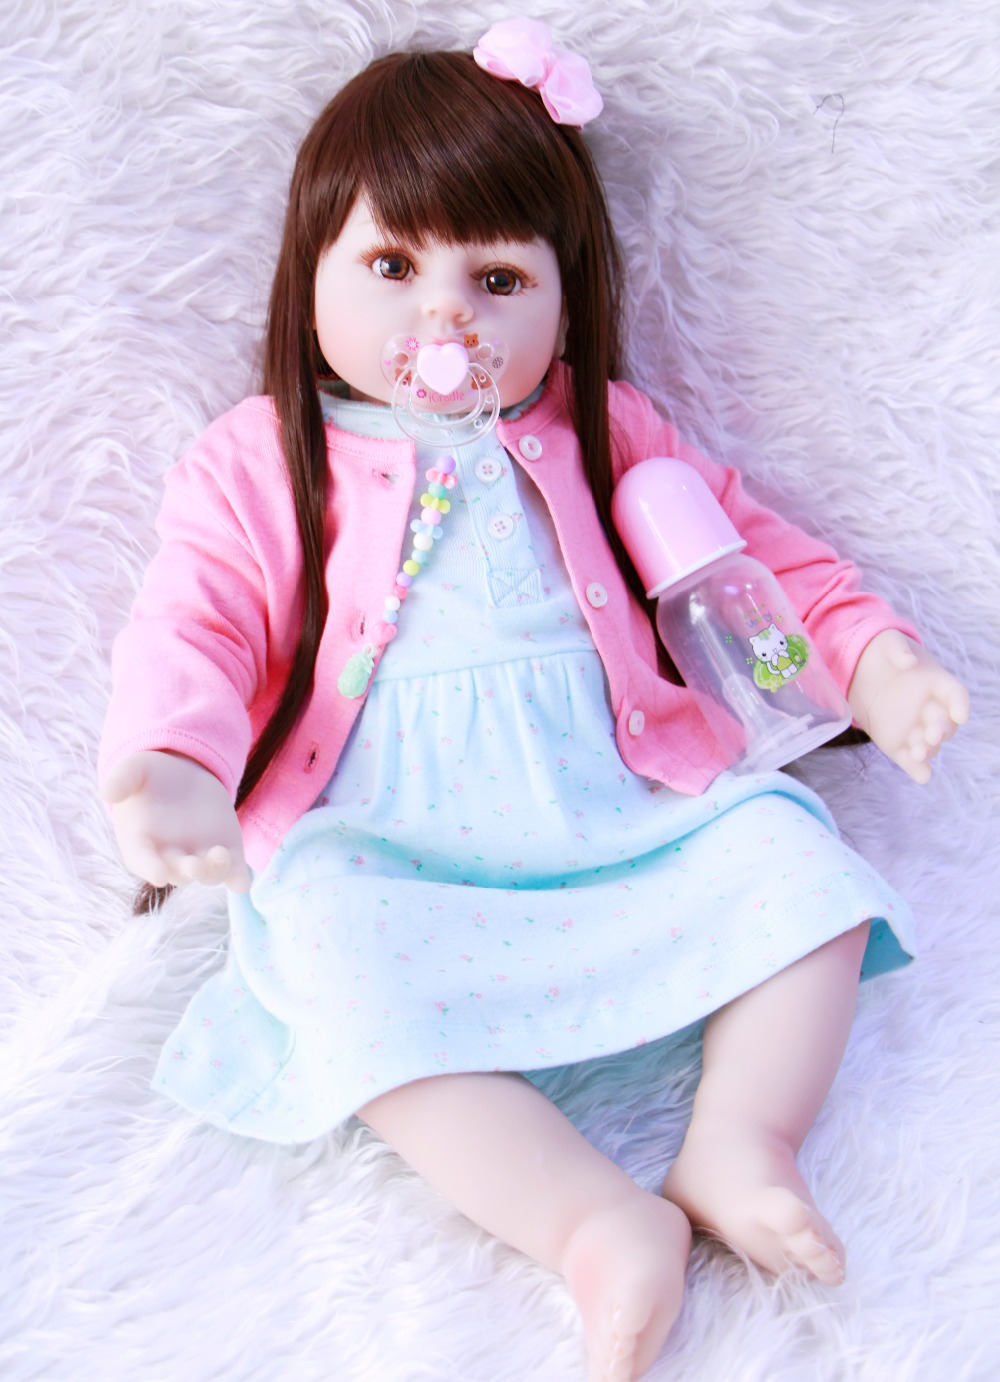 2358cm Soft Silicone babies Reborn Dolls straight long hair princess   collectible  Bebe Alive Dolls Kids Playmate brinquedos 2358cm Soft Silicone babies Reborn Dolls straight long hair princess   collectible  Bebe Alive Dolls Kids Playmate brinquedos